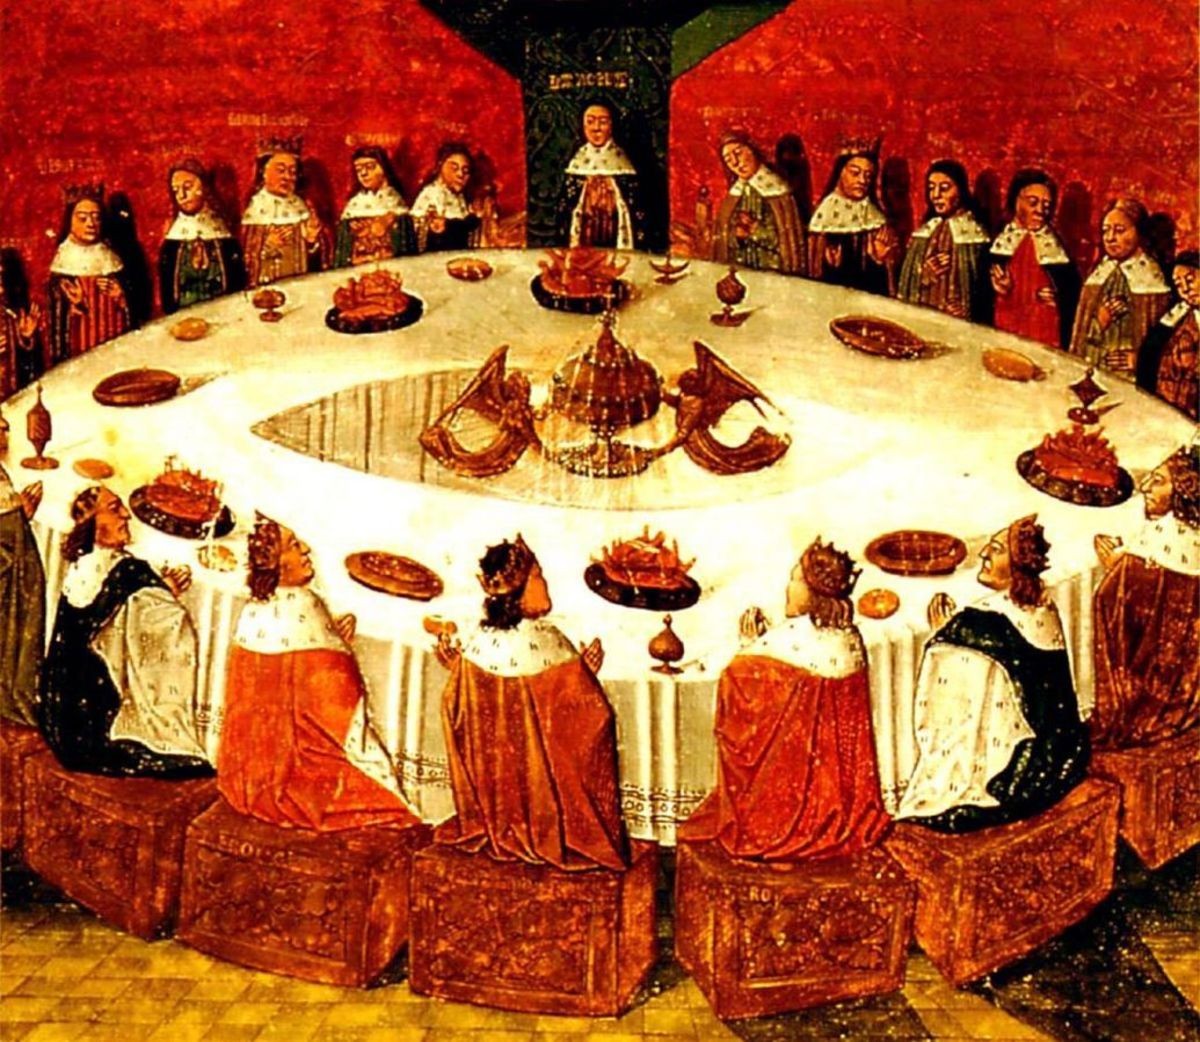 A horizontal team: King Arthur and the Knights of the Round Table